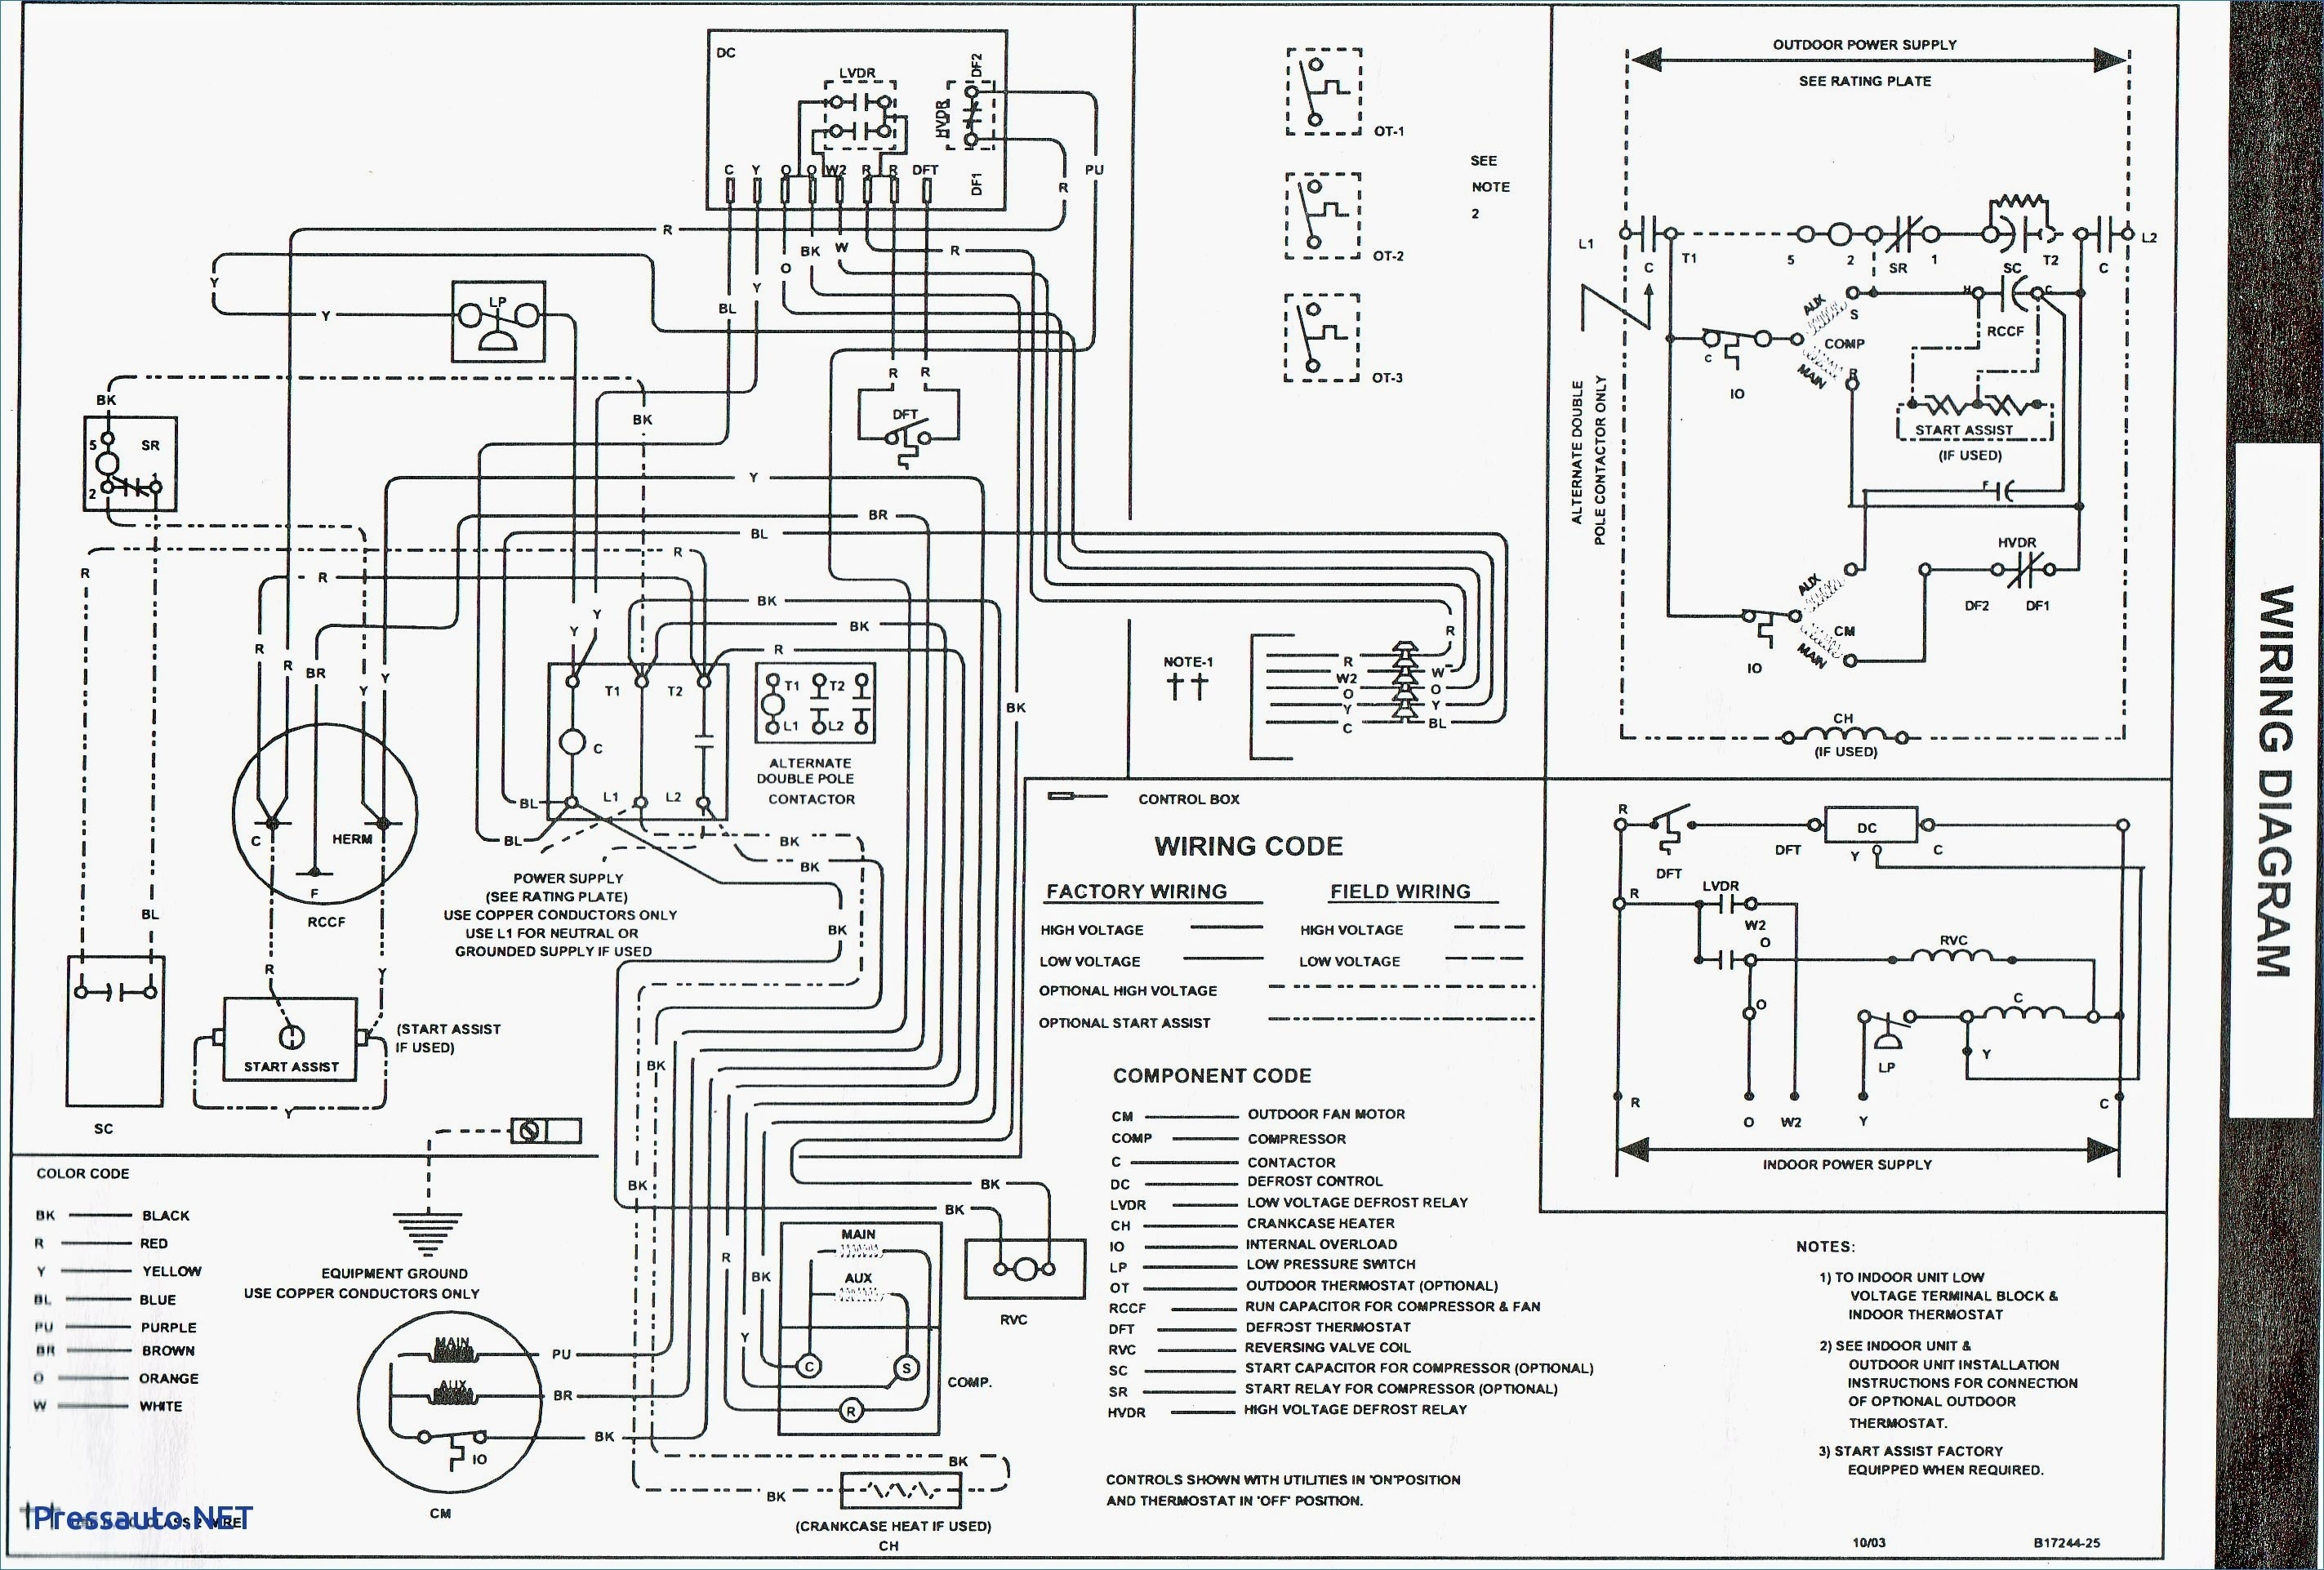 7 Way Blade Wiring Diagram Cat